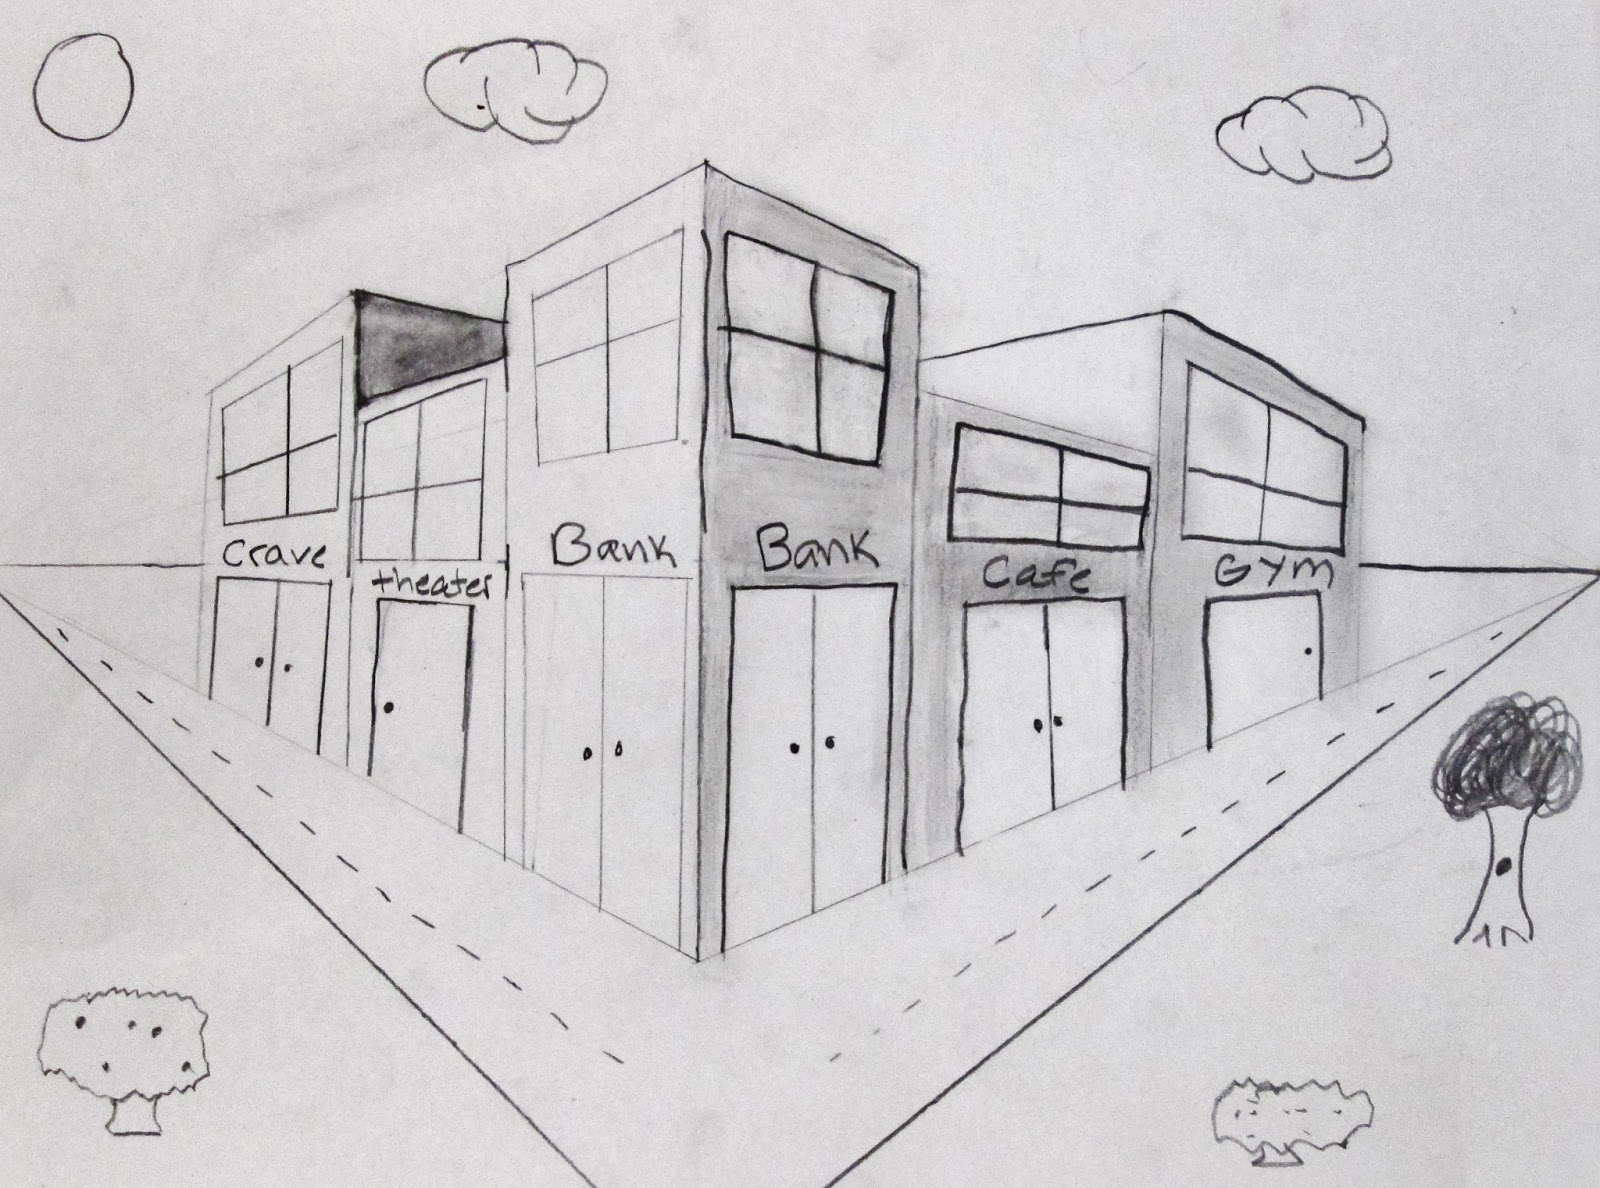 With Two Point Perspective 5th Grade Students Made Their Own Street Corner Complete All The Daily Essentials Like A Bank Wal Mart McDonalds